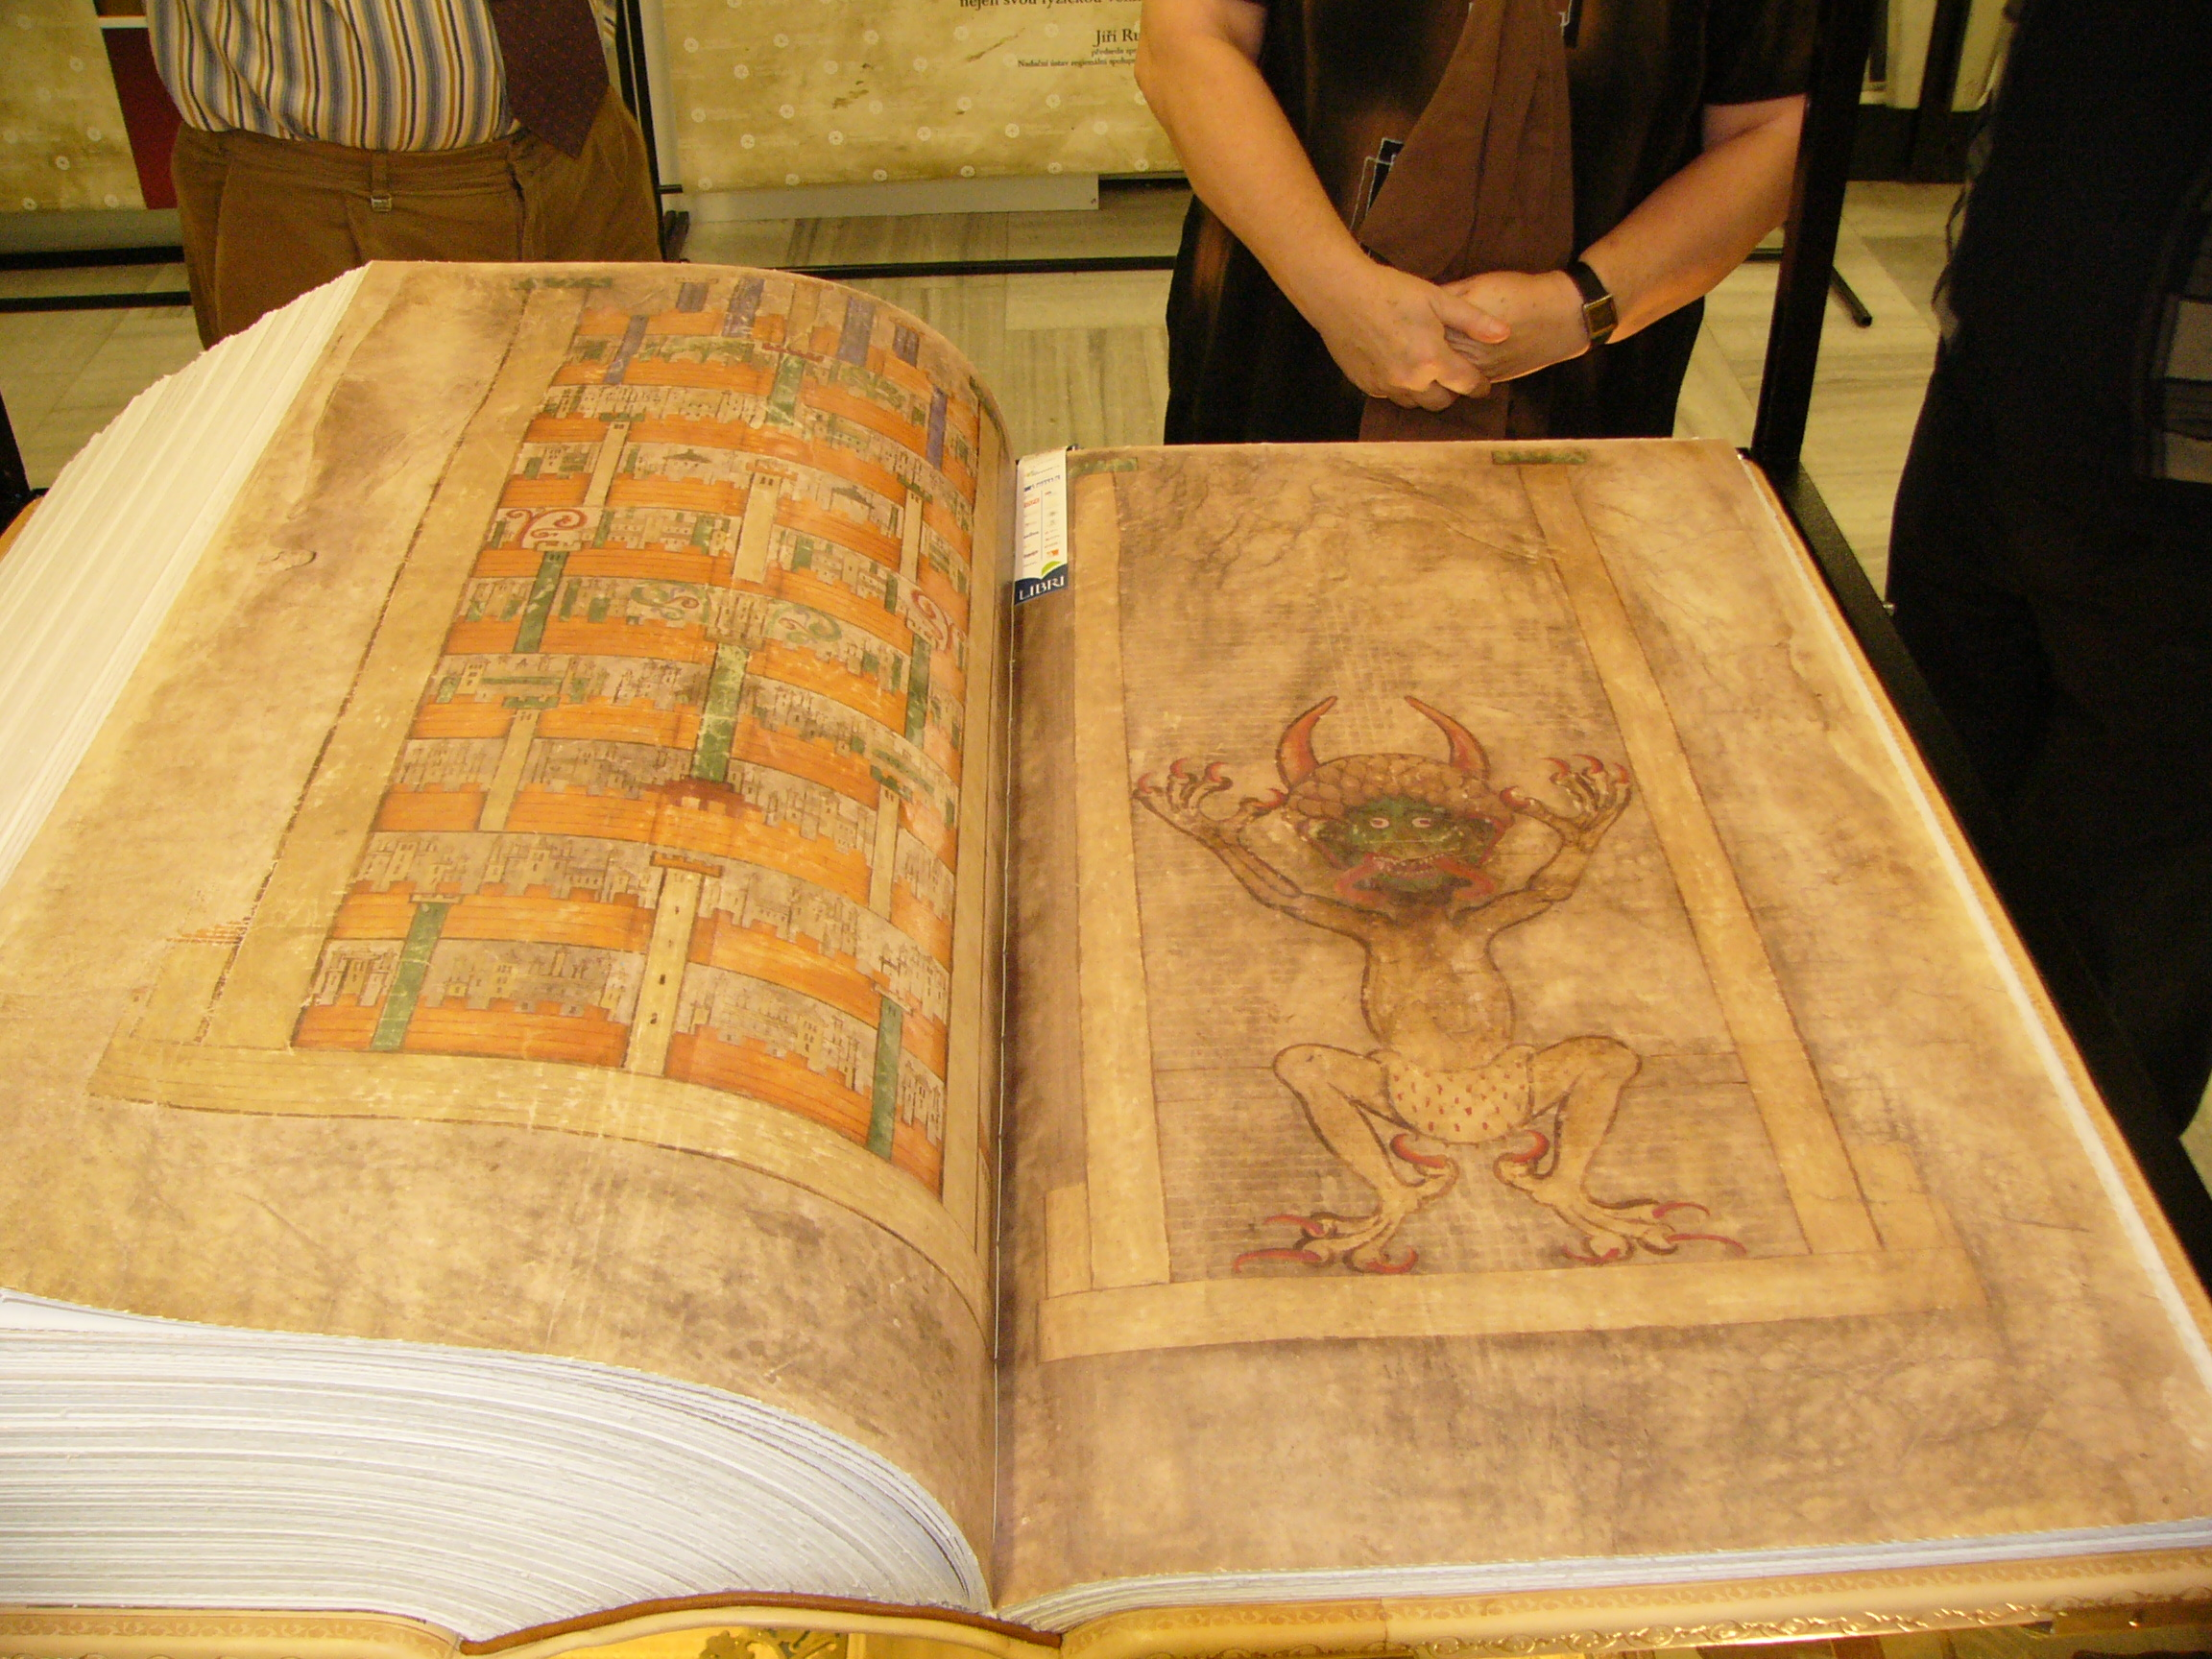 Codex Gigas facsimile